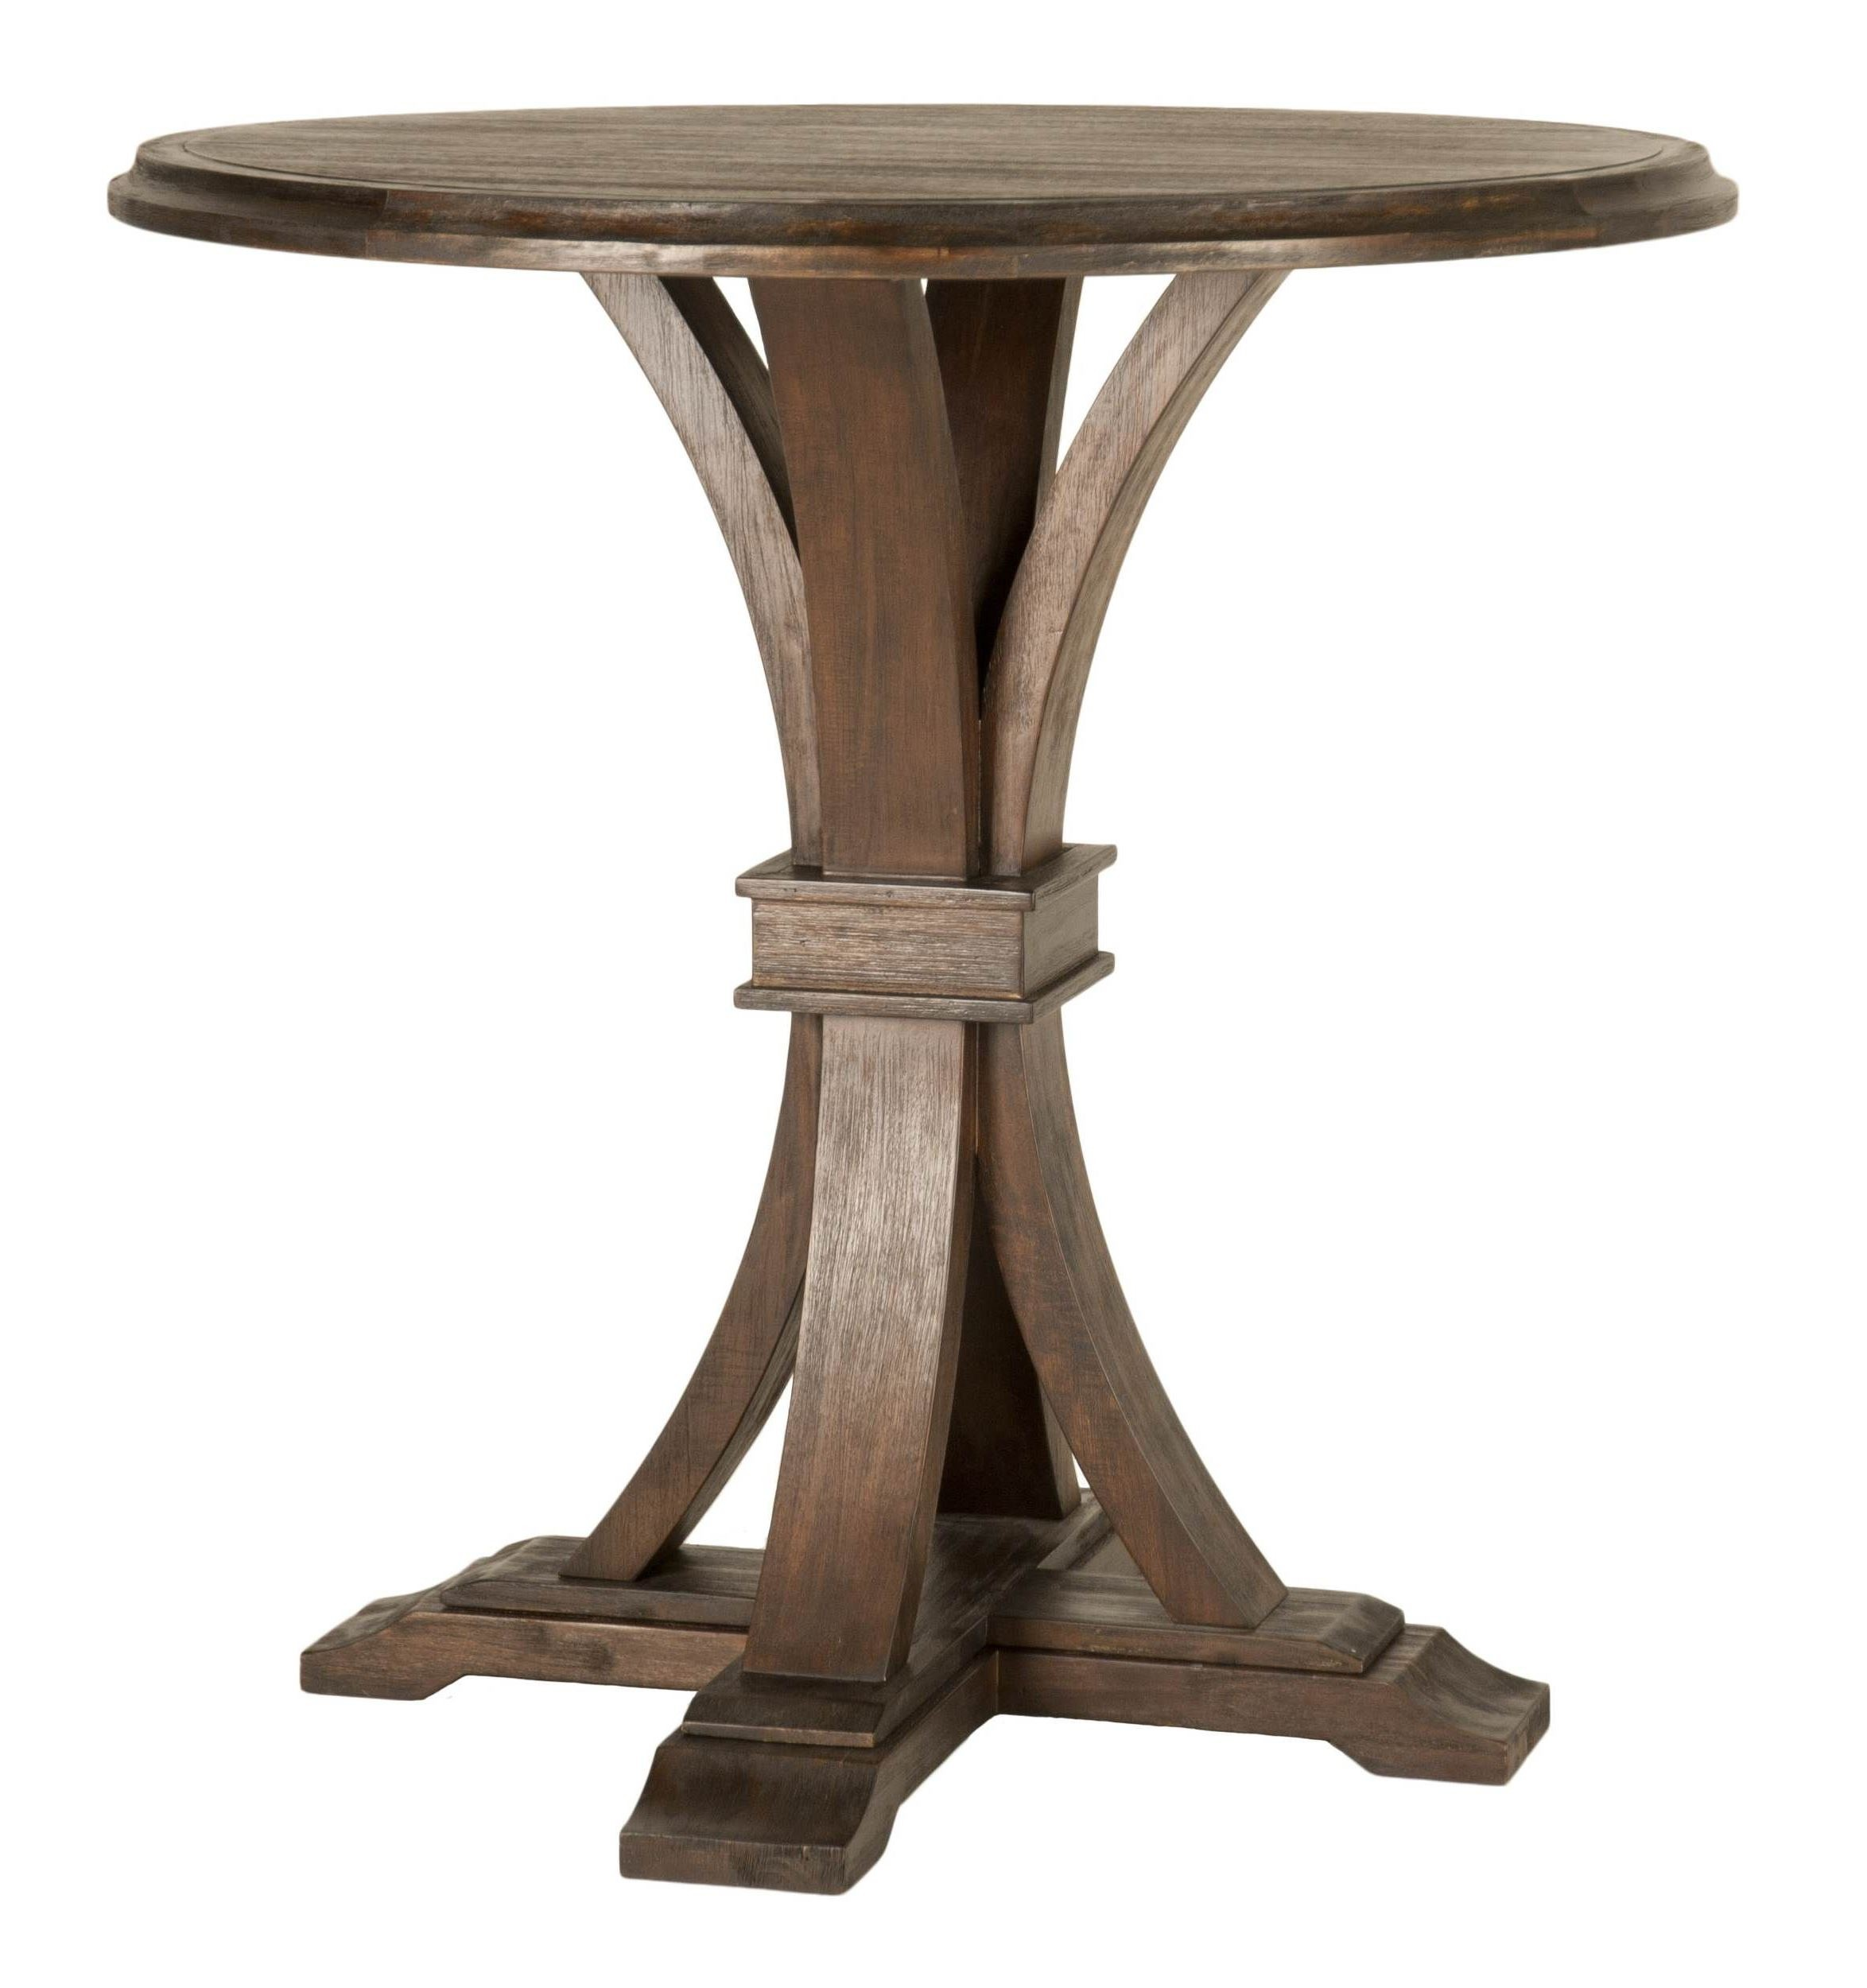 Devon Rustic Java Round Bar Height Dining Table from  : devonbarheightrnddtrjav2 from colemanfurniture.com size 2348 x 2500 jpeg 387kB